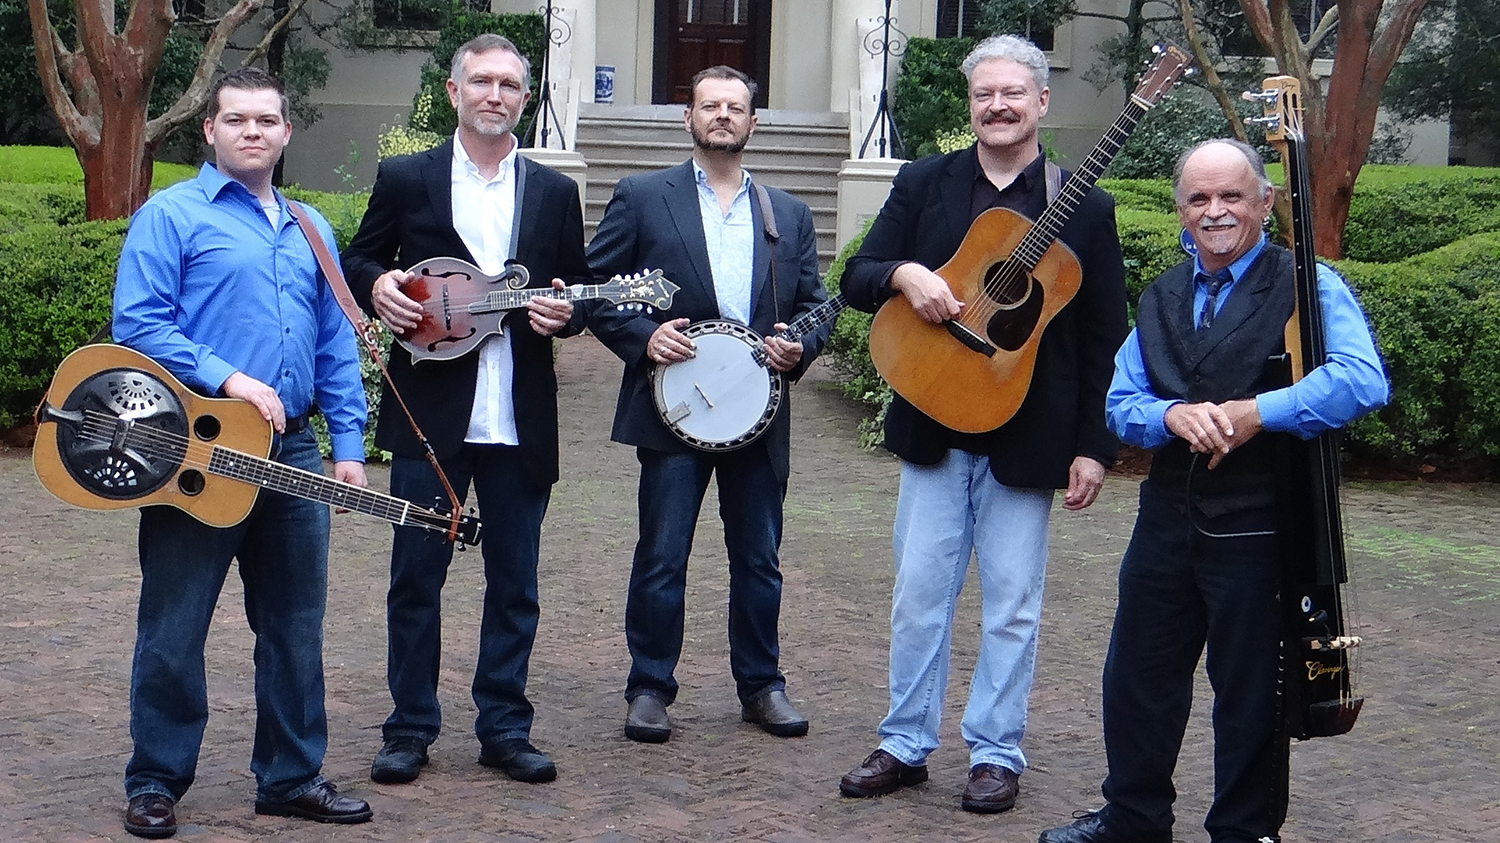 Four men standing outside and holding bluegrass instruments.